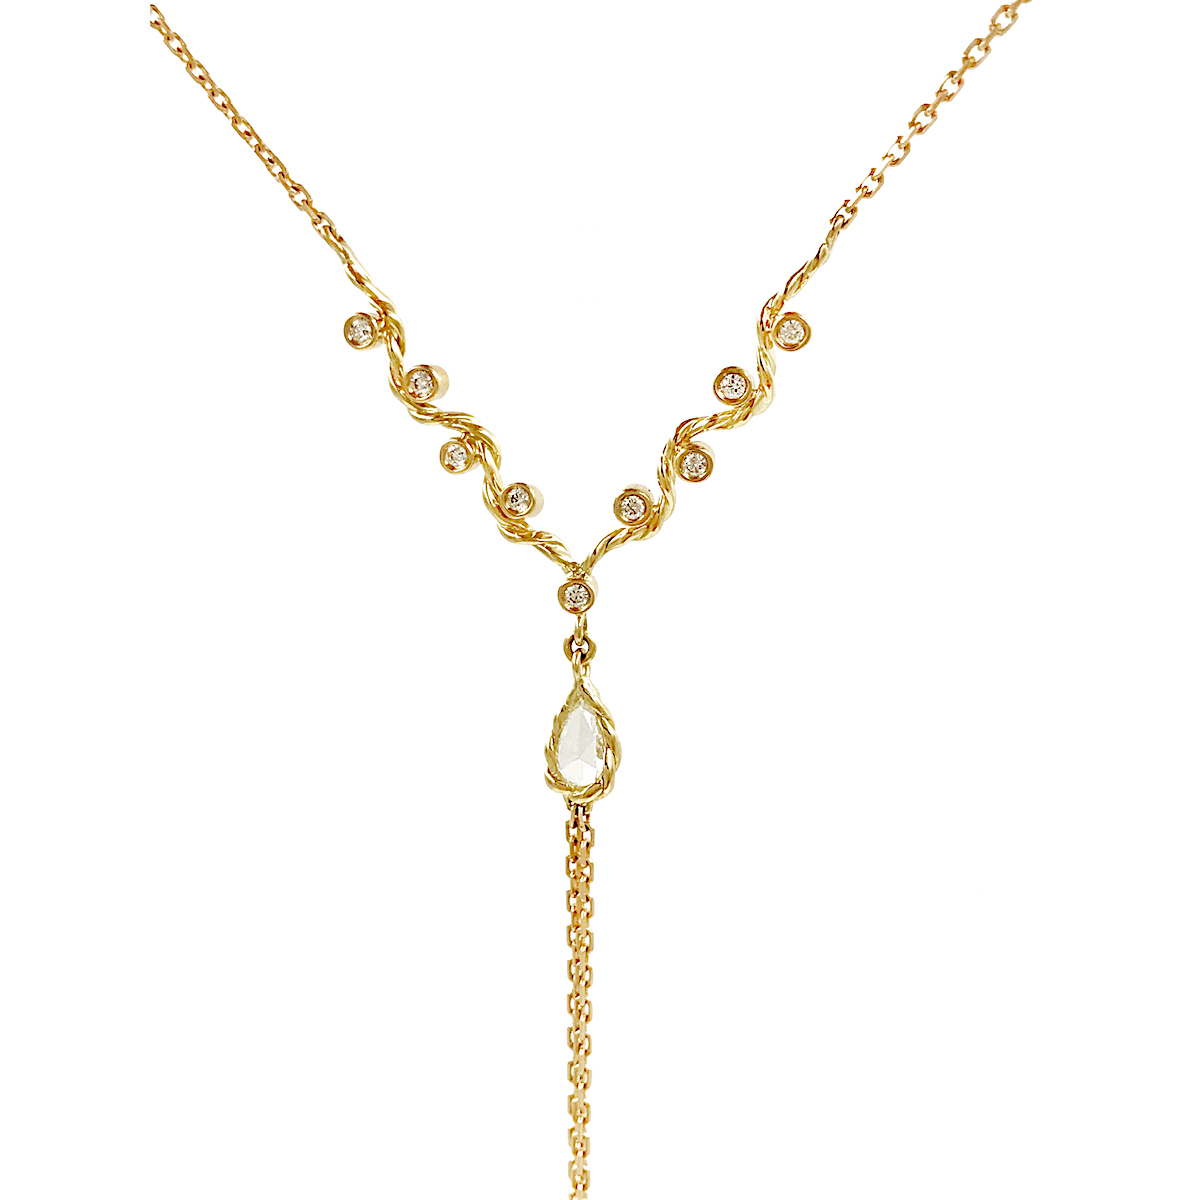 curb pdp ibb com necklace online gold yellow twist john johnlewis buyibb rsp main at chain